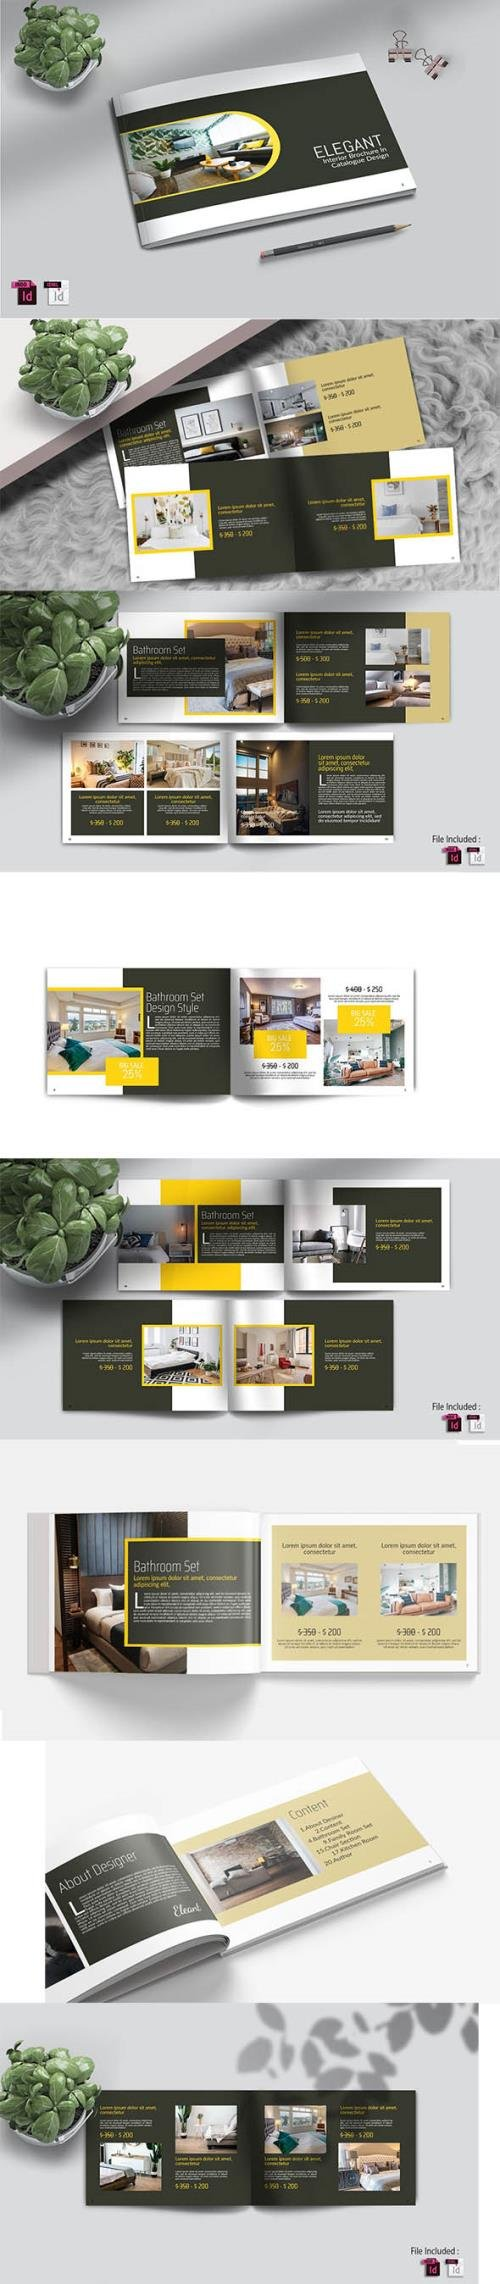 ELEGANT - Interior A4 Catalog Template